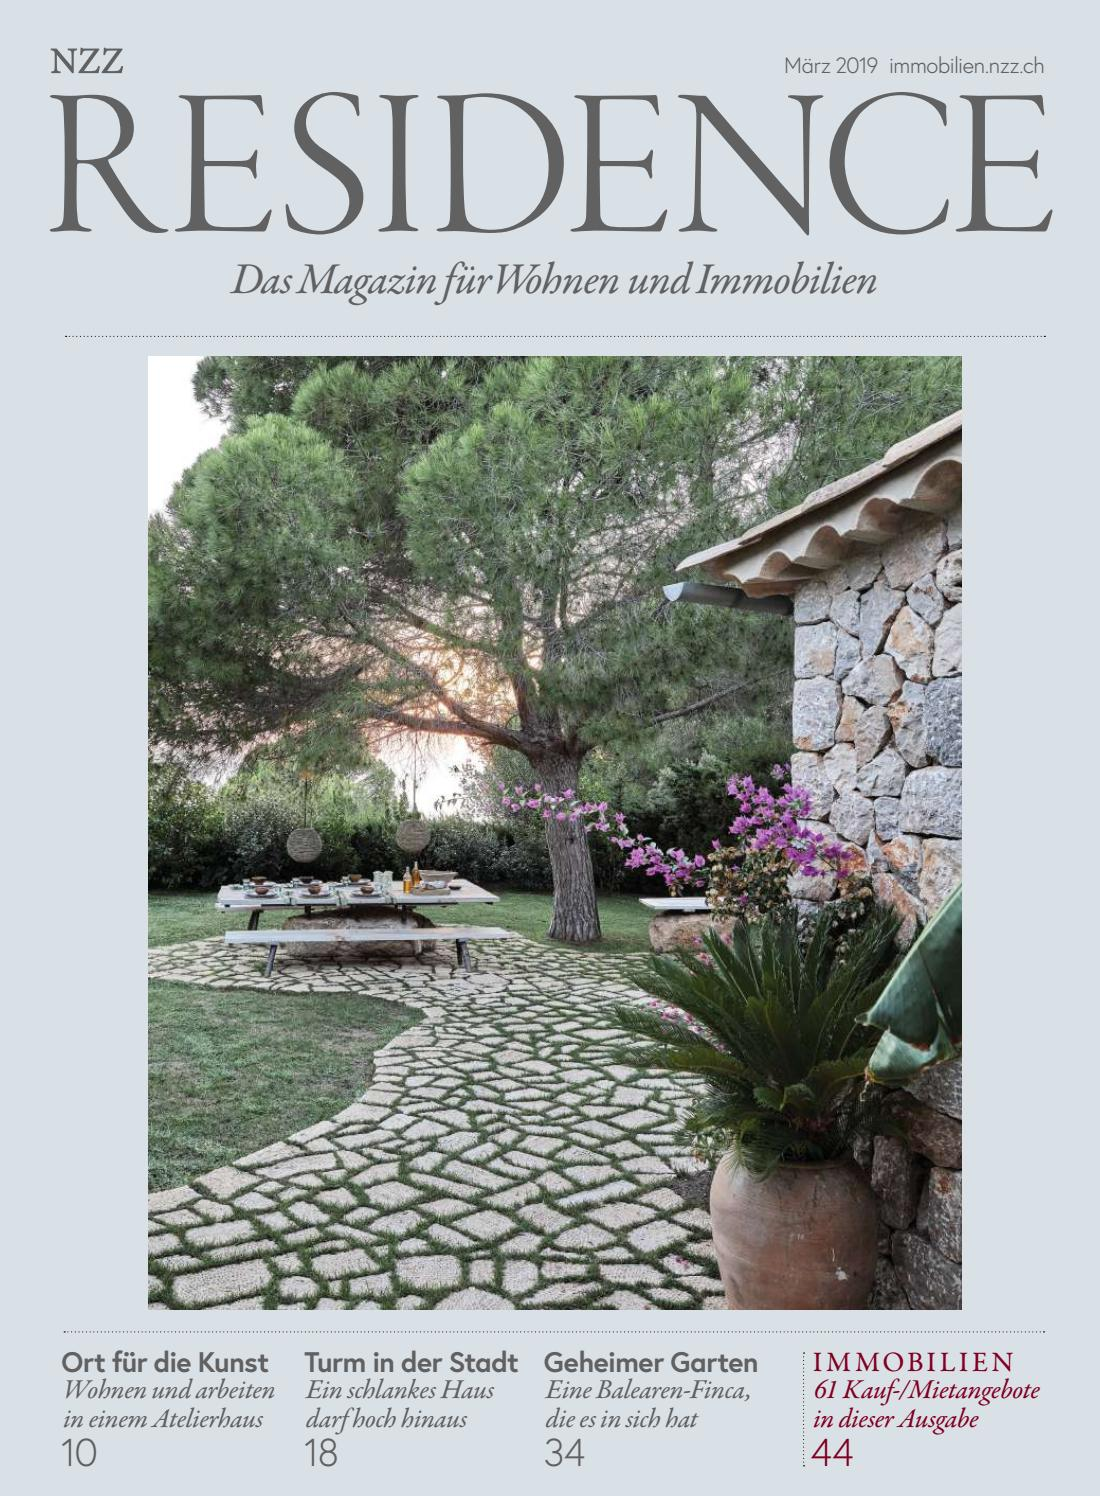 Residence Marz 2019 By Nzz Residence Issuu